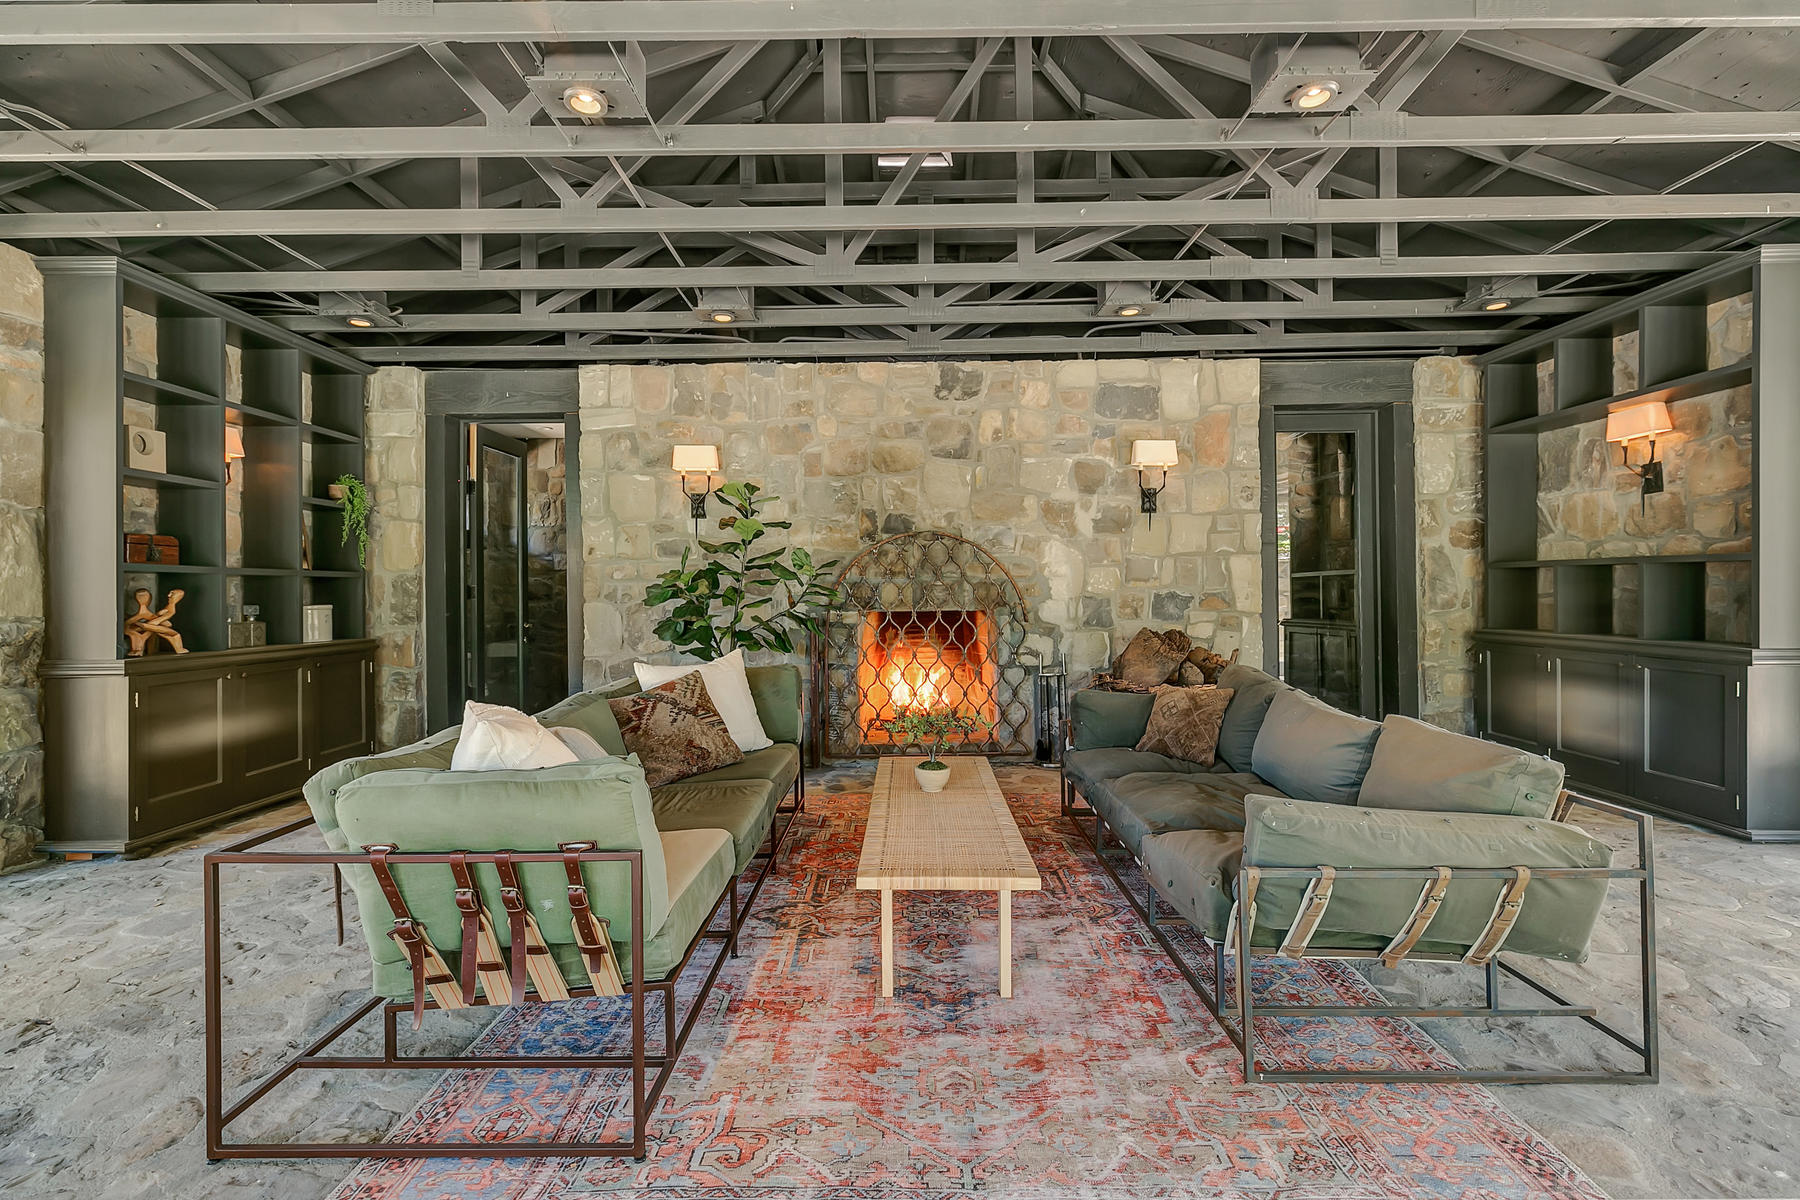 Single Family Homes for Sale at 4424 Thacher Road Ojai, California 93023 United States